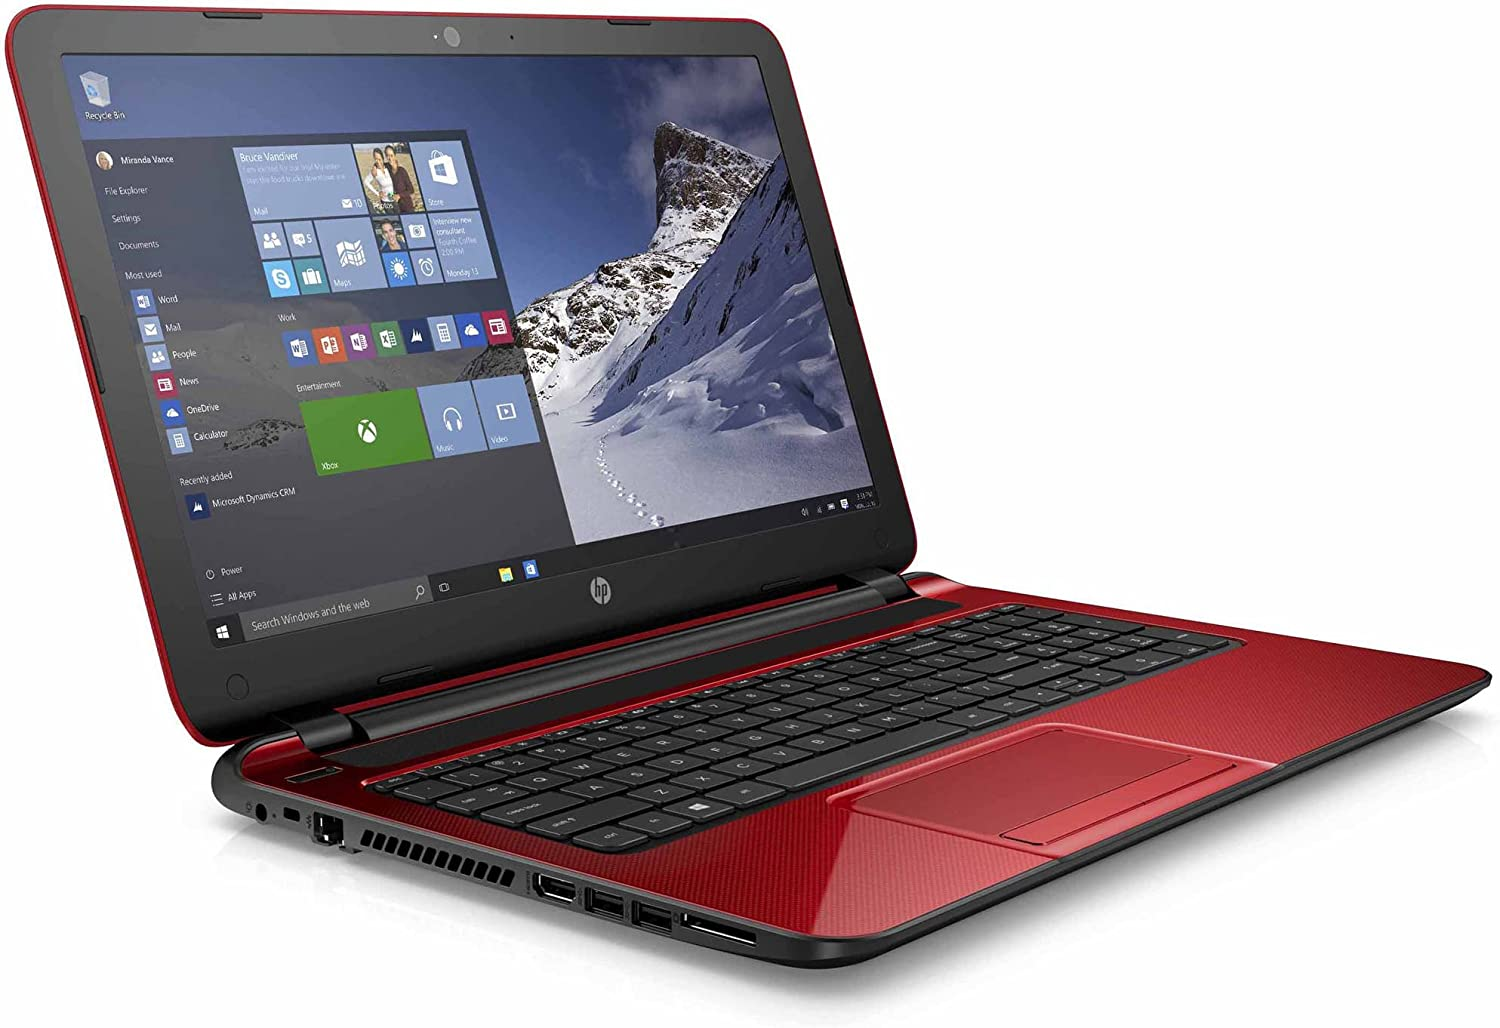 HP Flyer Red 15.6 Inch Laptop (Intel Pentium Quad-Core N3540 Processor up to 2.66GHz, 4GB RAM, 500GB Hard Drive, DVD Drive, HD Webcam, Windows 10 Home) (Renewed)